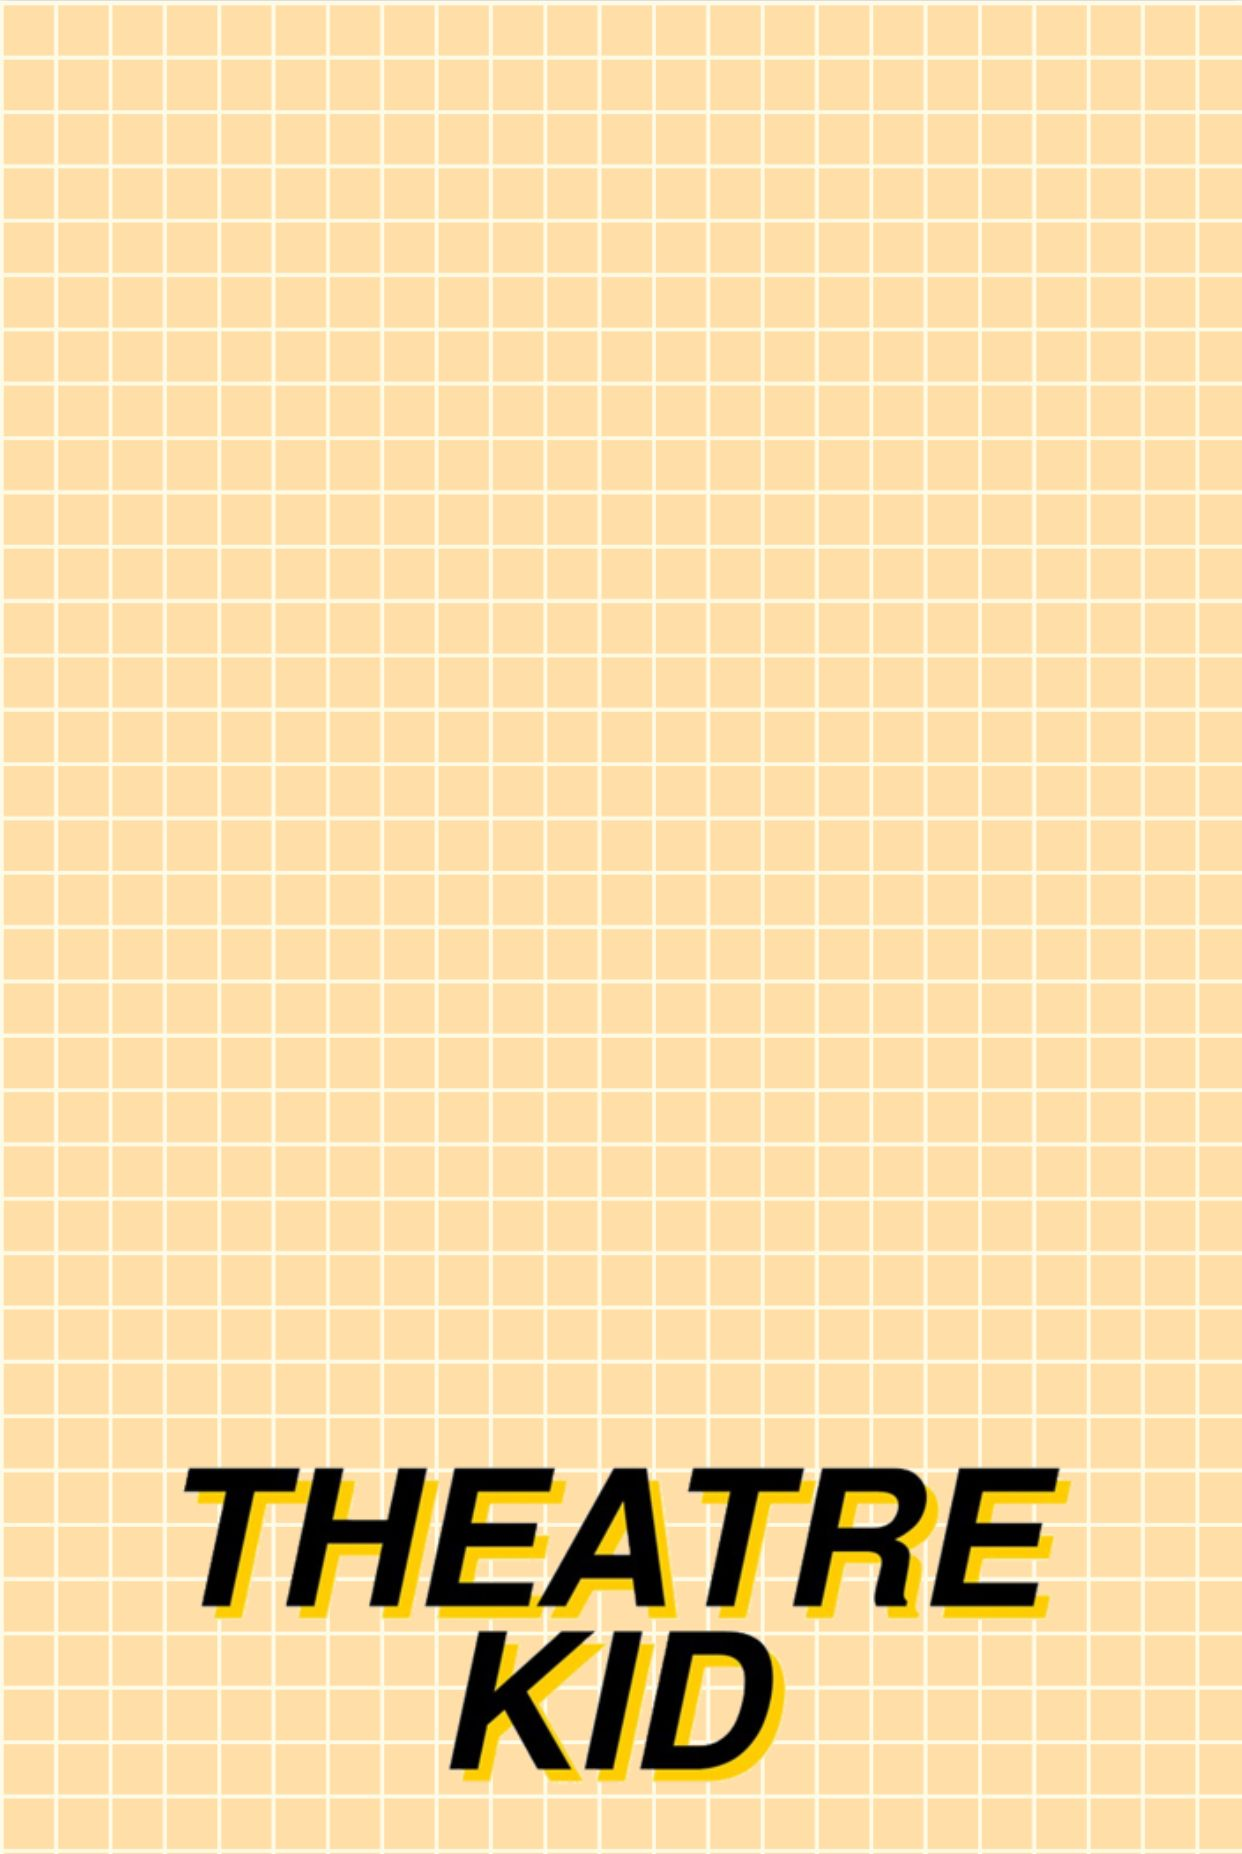 Theatre Nerd Phone Wallpaper Background Free To Use Comment If You Use It Musical Wallpaper Funny Phone Wallpaper Musical Theatre Broadway